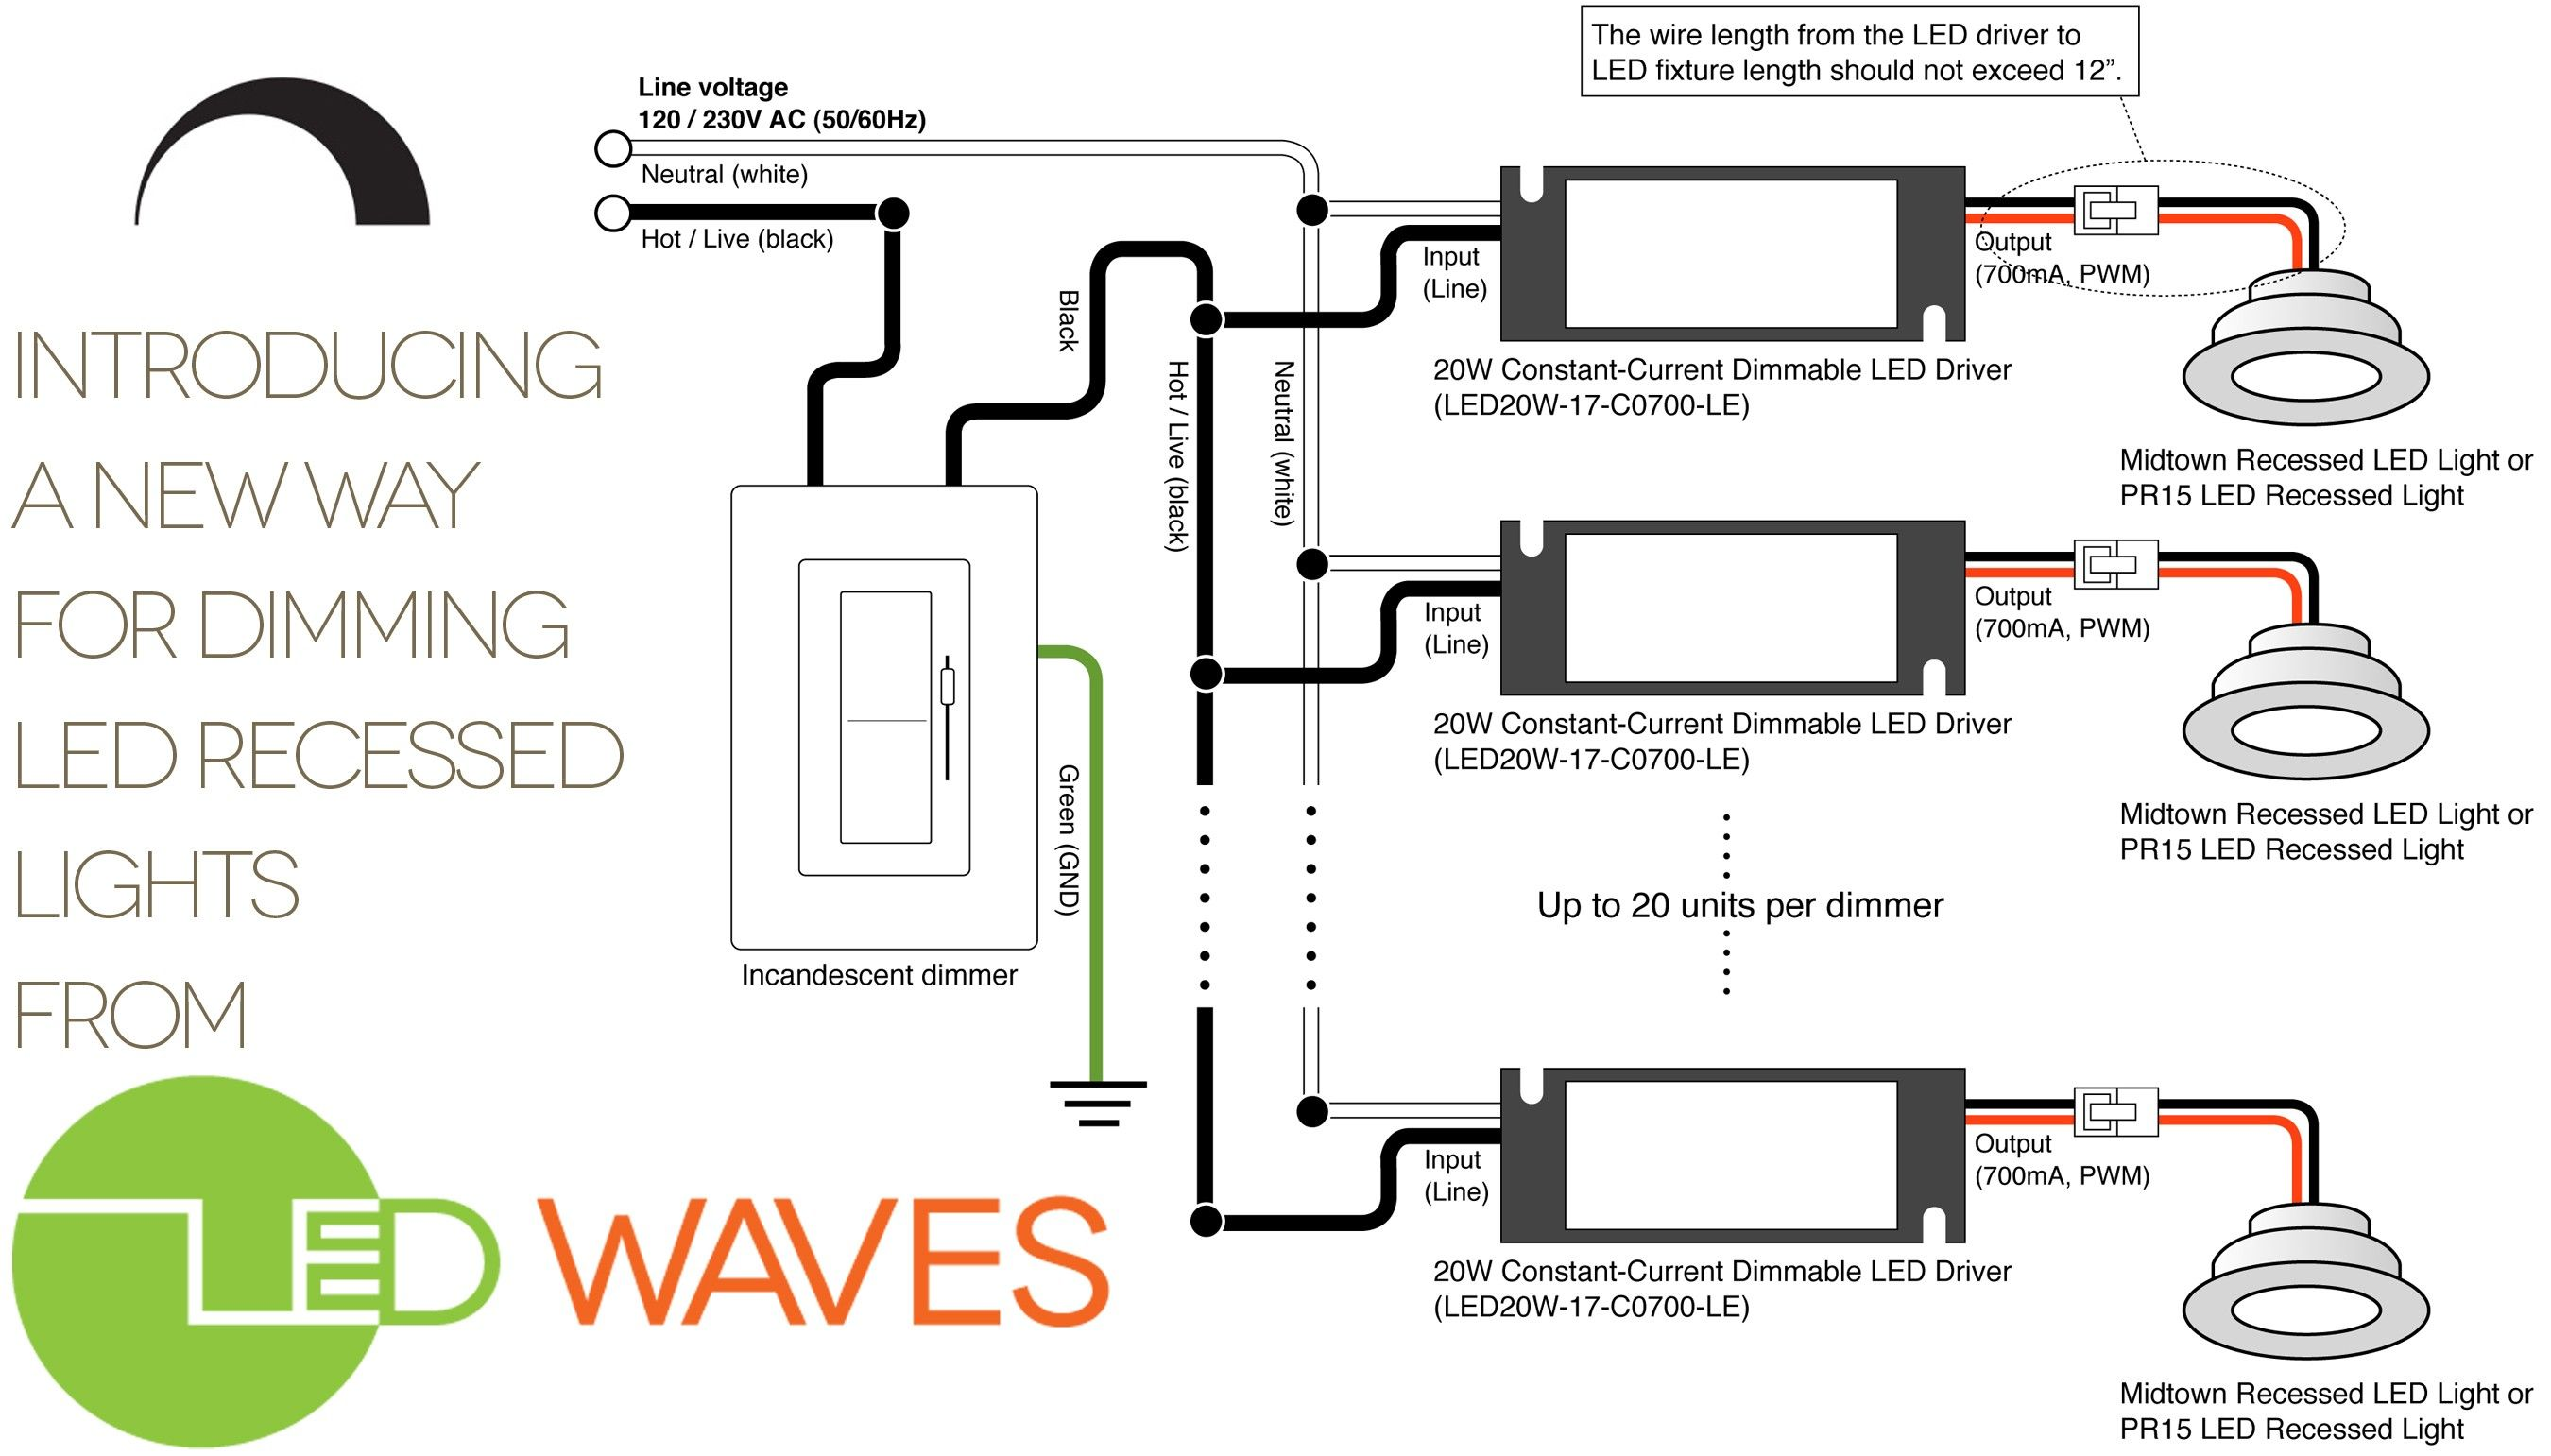 Elegant Wiring Diagram Ceiling Light #diagrams #digramssample  #diagramimages #wiringdiagramsample #wiringdiagram | Recessed can lights,  House wiring, Dimmer switchPinterest